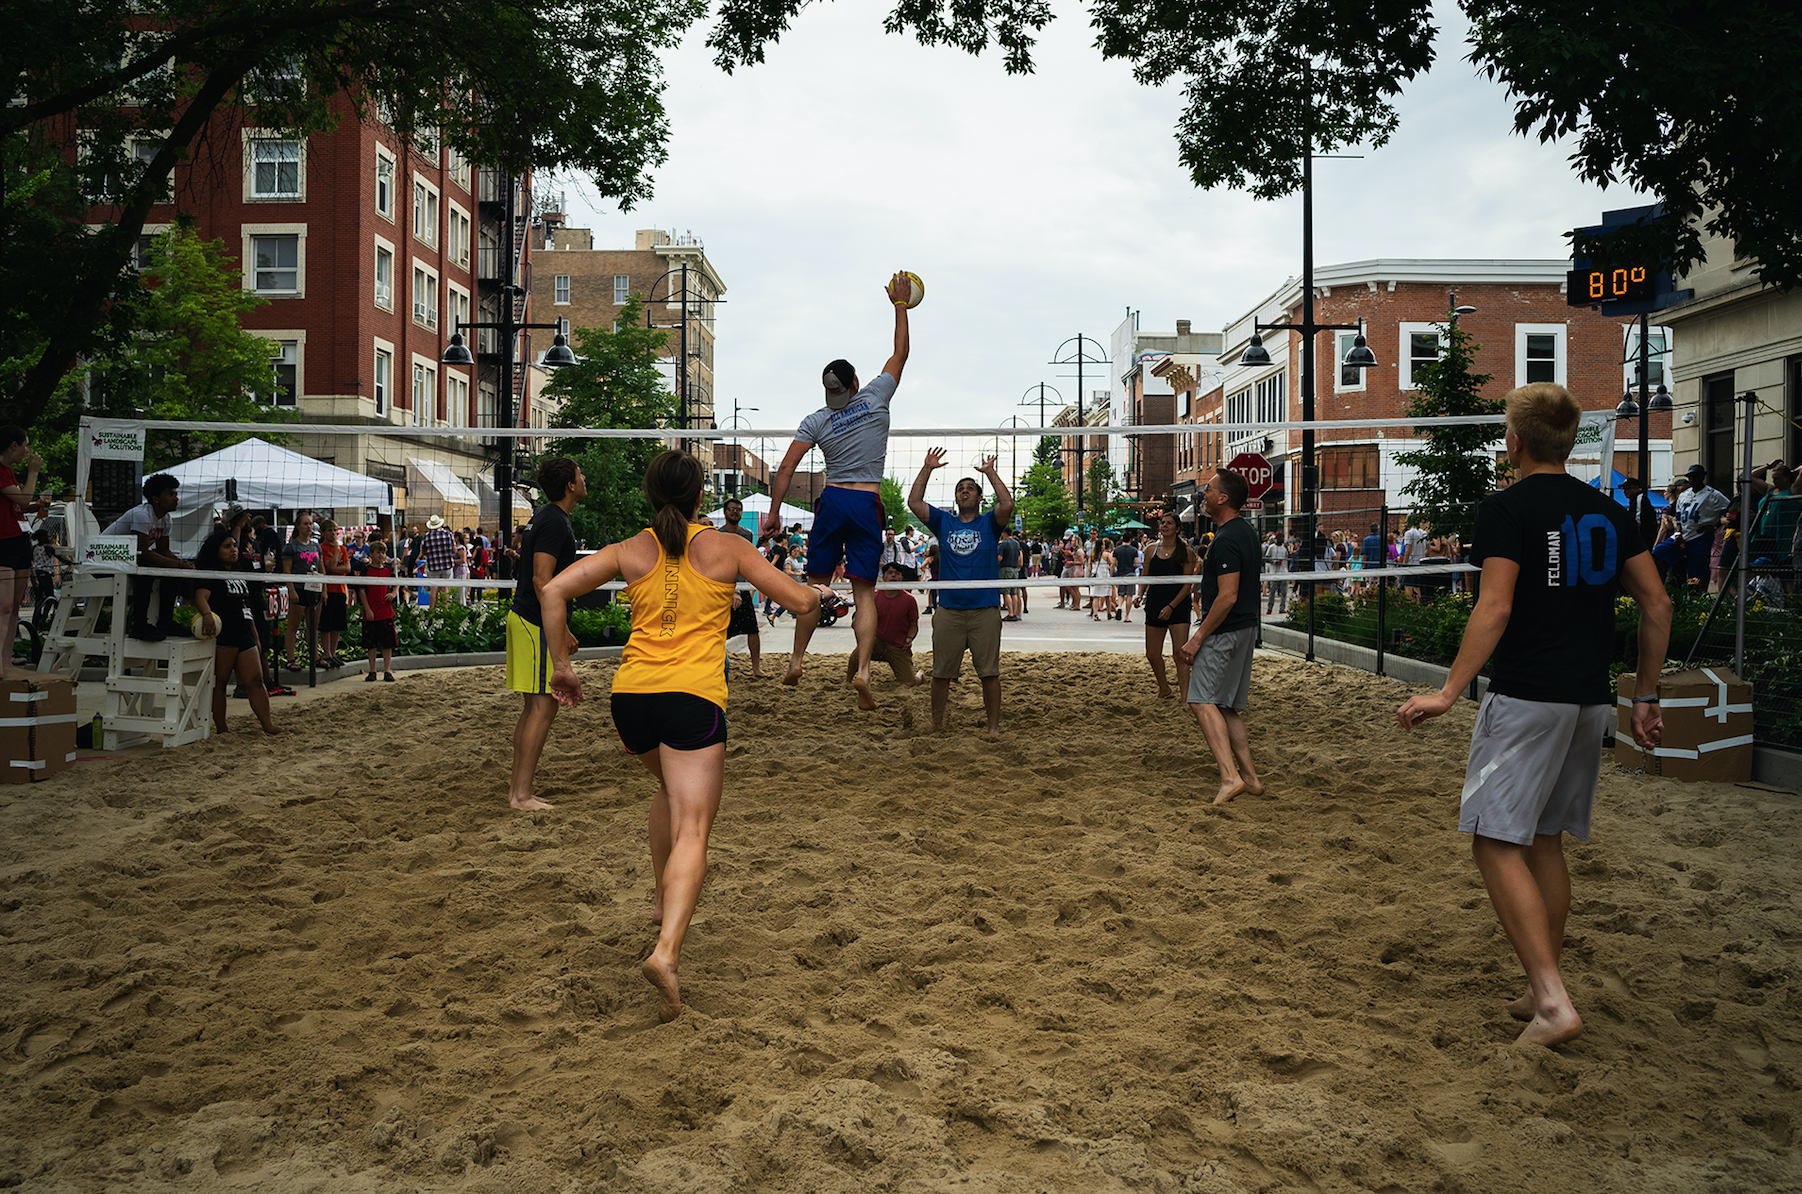 Partygoers participate in the volleyball tournament at the second annual Iowa City Downtown District Block Party on Saturday, June 23. The event, which allowed open containers in select downtown areas, attracted thousands of attendees. (Matthew Finley/The Daily Iowan)